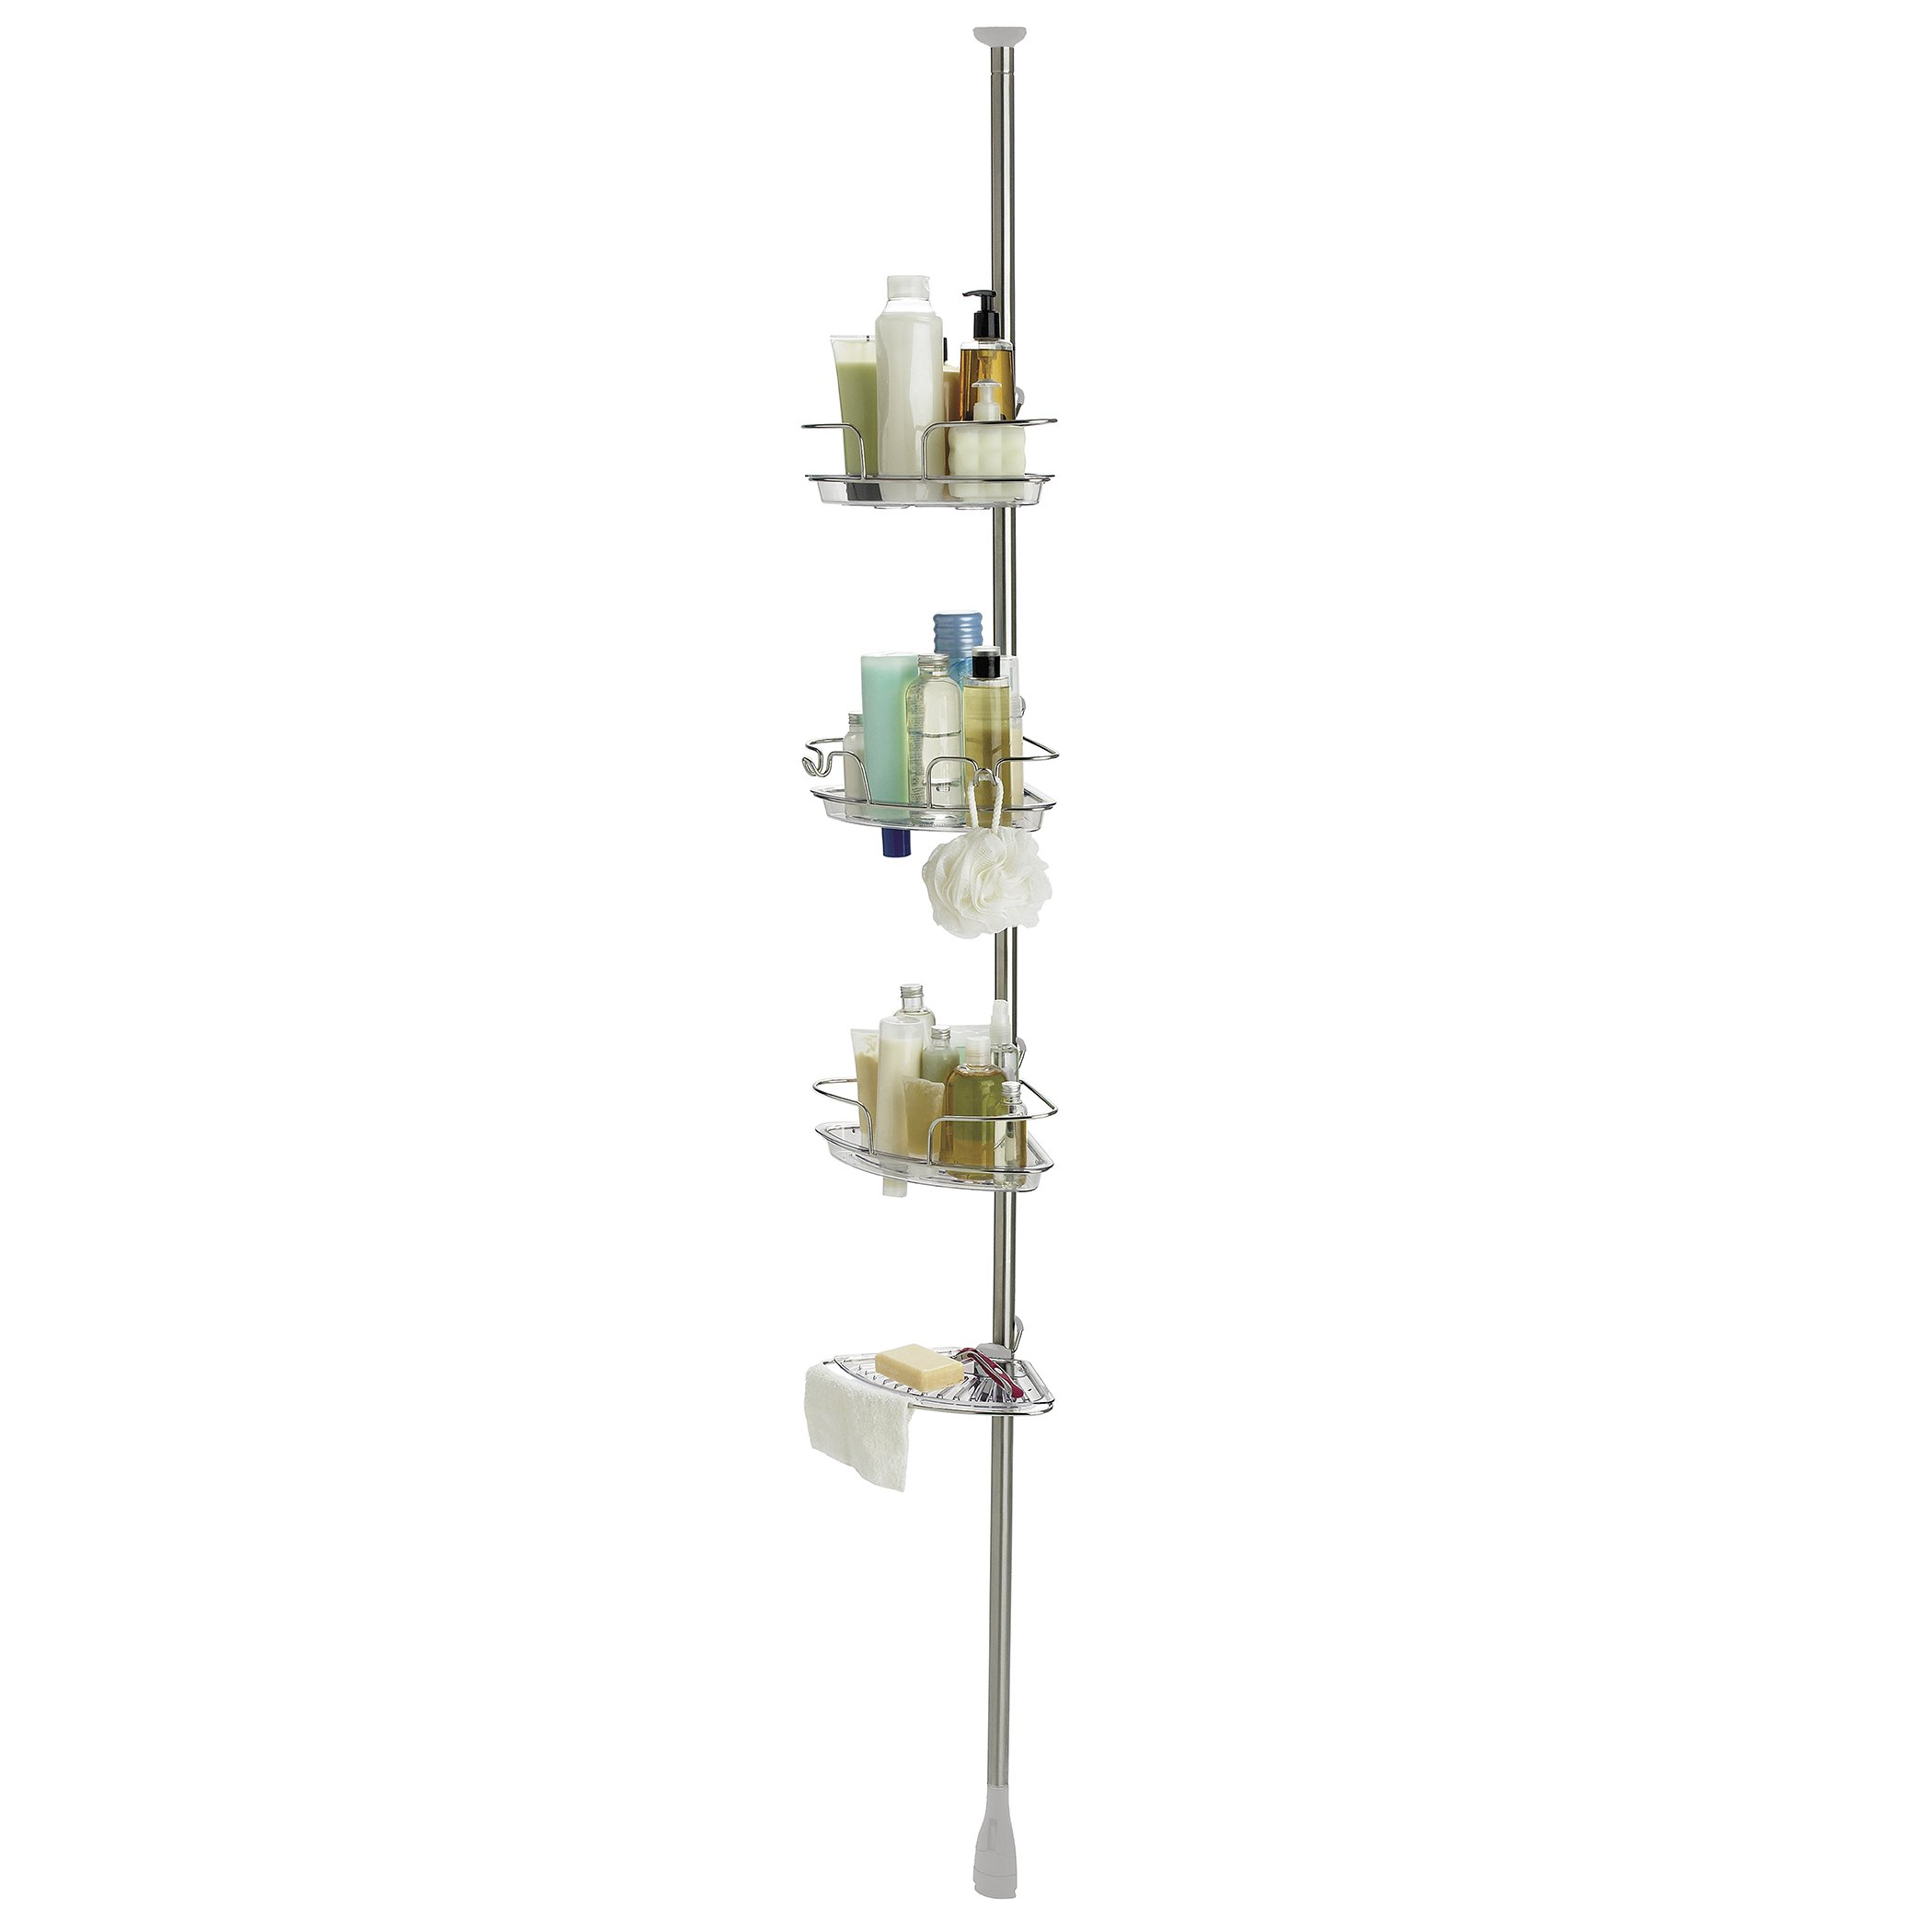 OXO Good Grips Lift and Lock Stainless Steel Tension Pole Shower Caddy by OXO (Image #2)